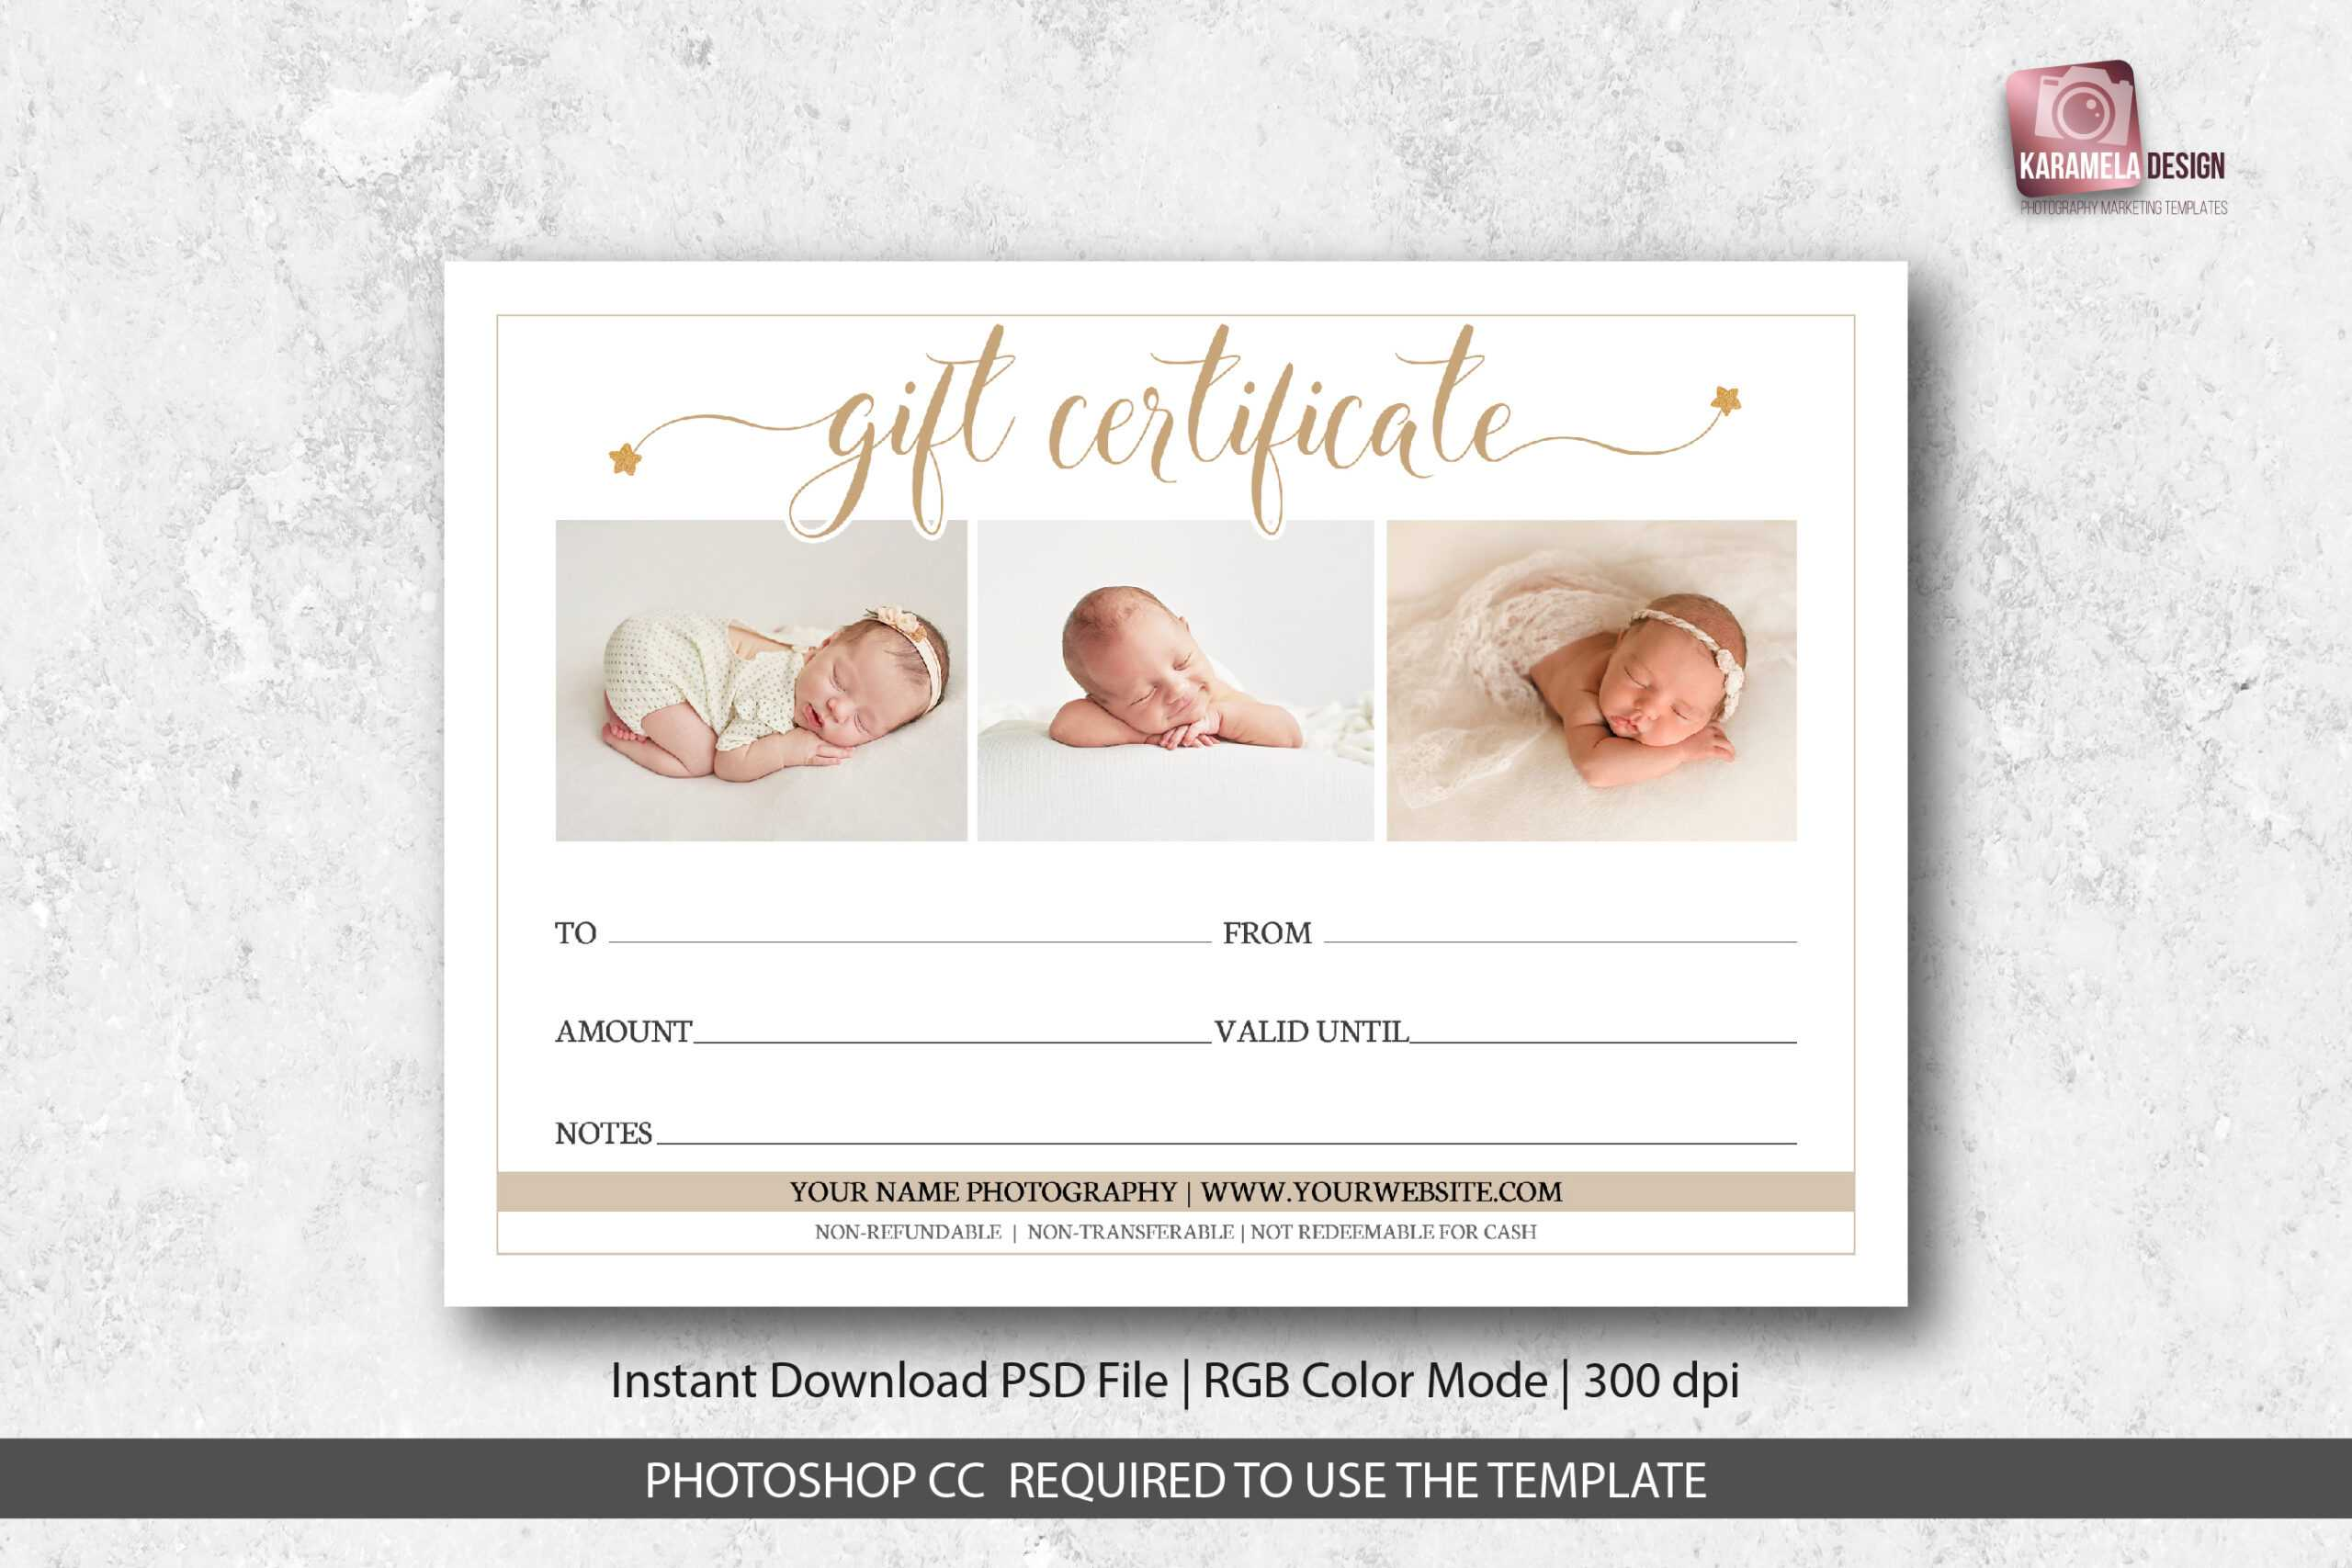 Photography Studio Gift Certificate Template Intended For Photoshoot Gift Certificate Template